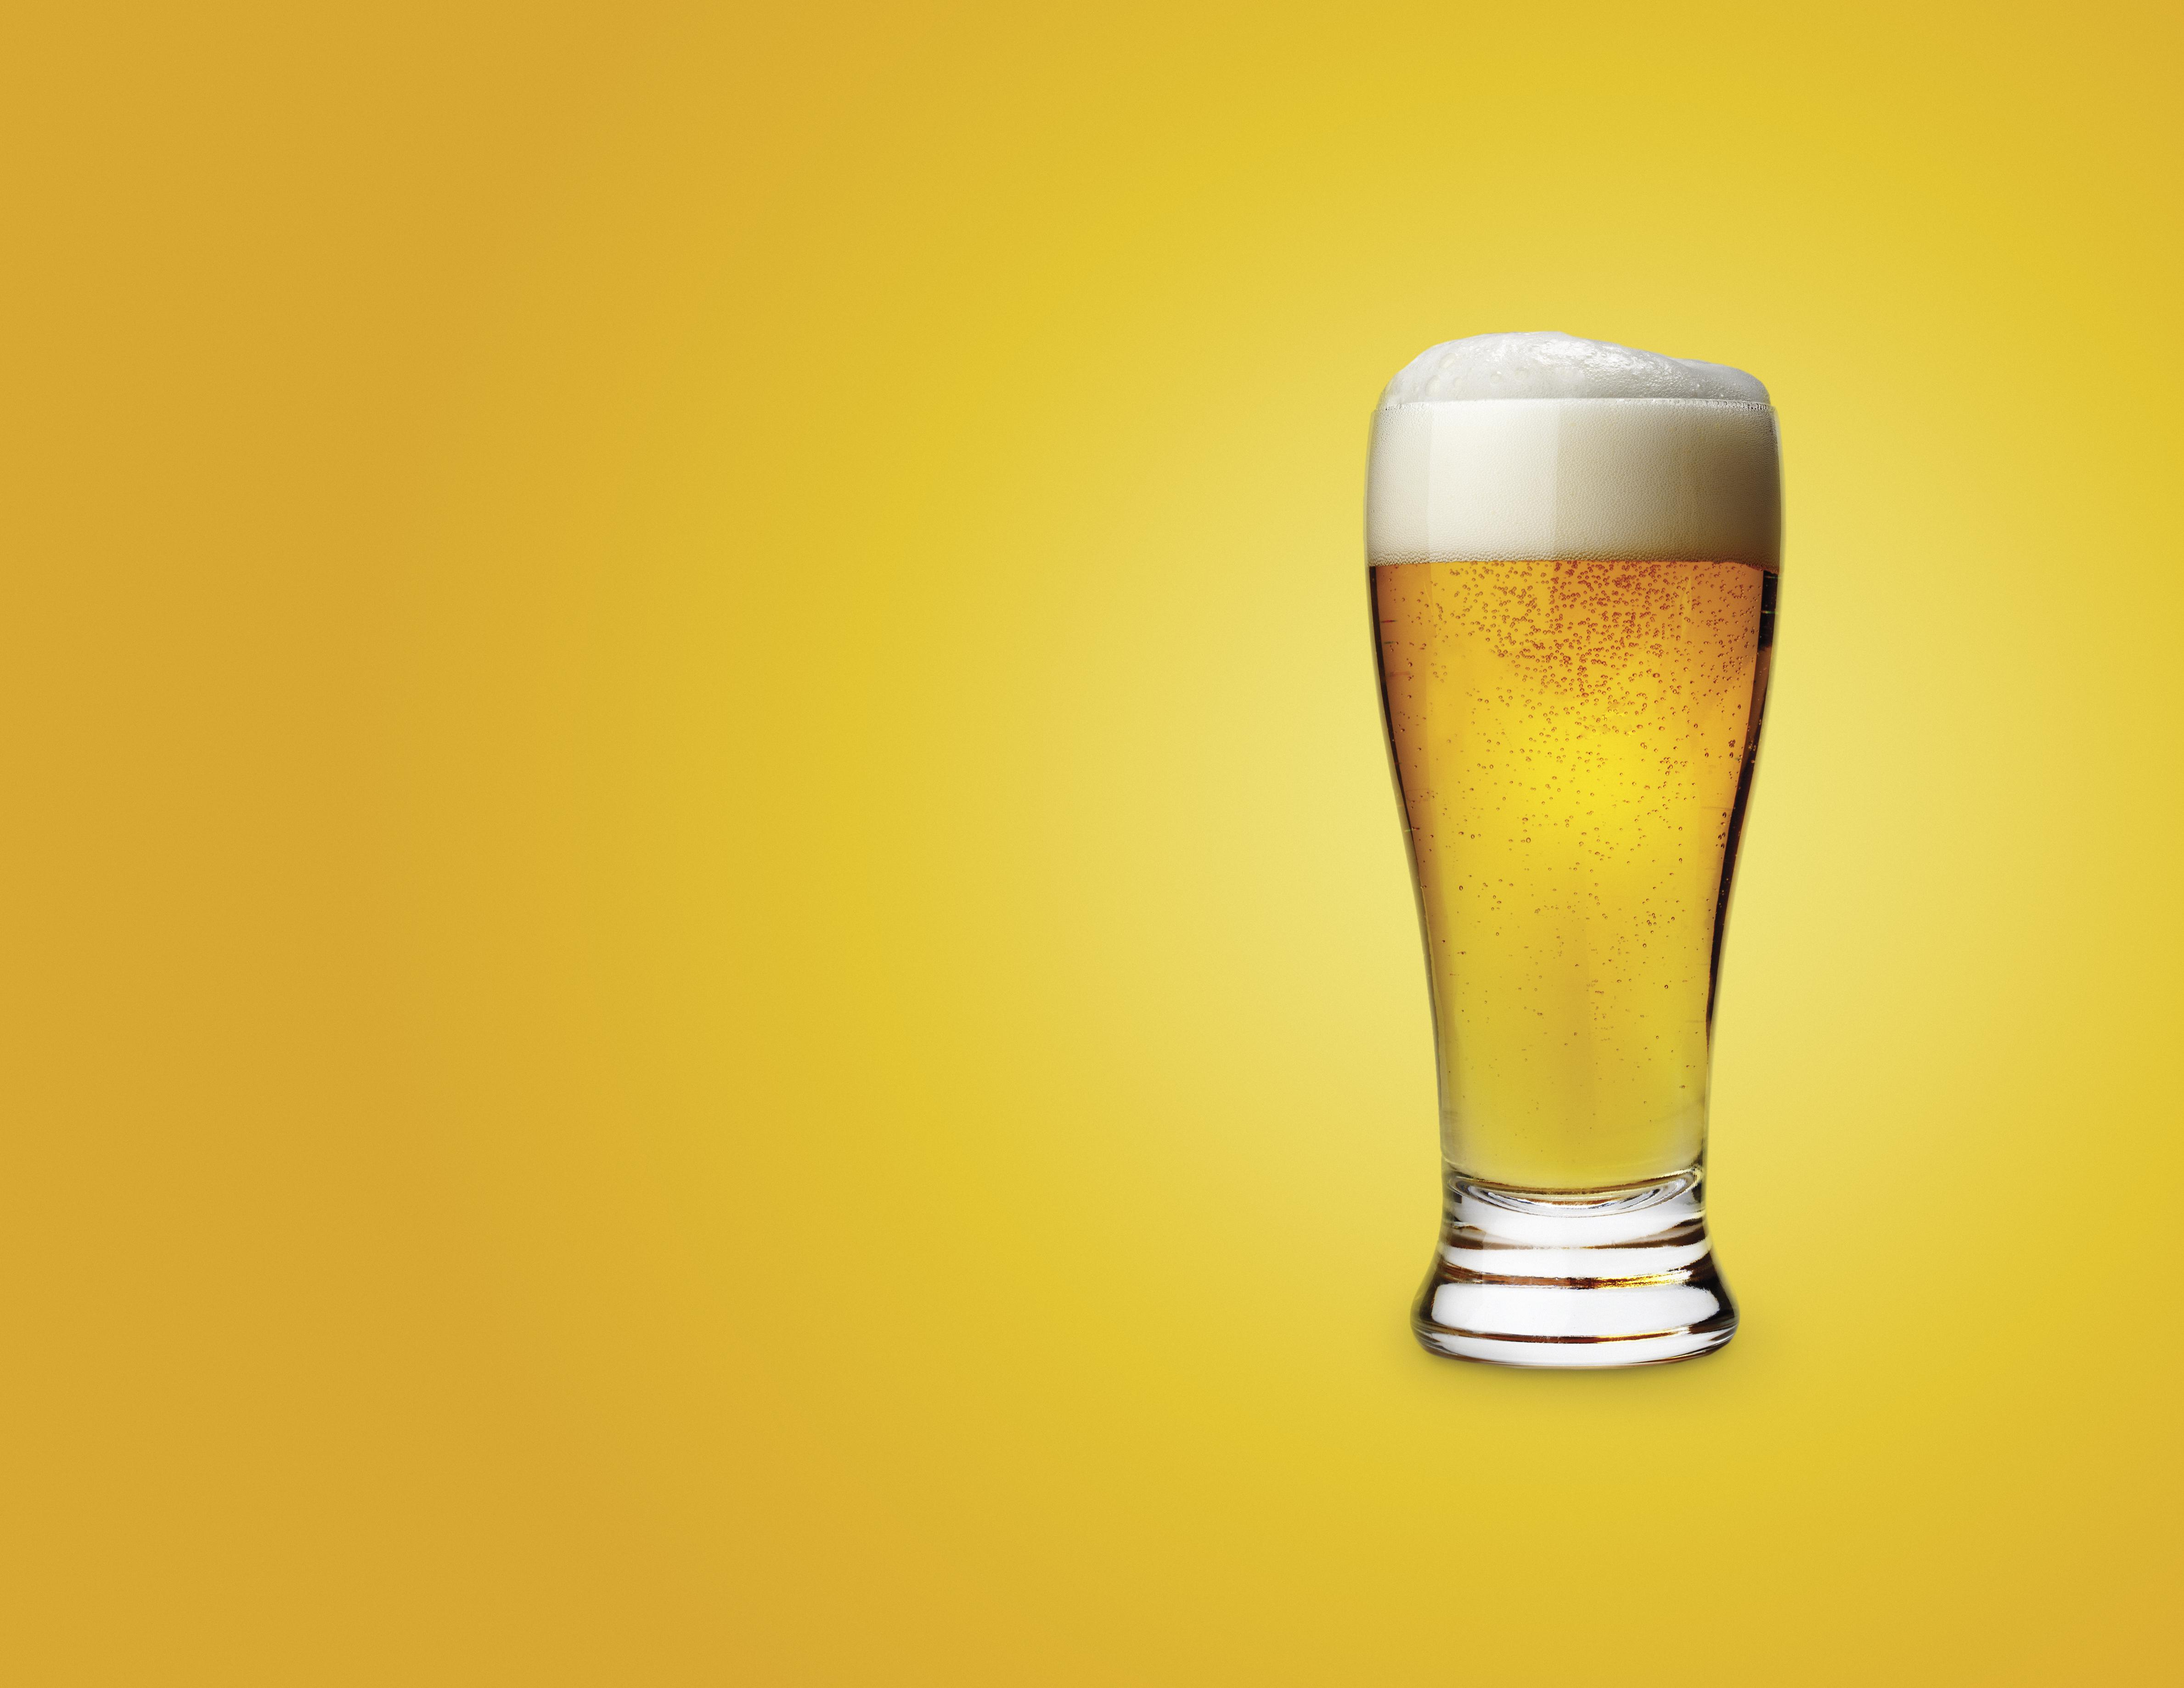 Glass of beer on colored background